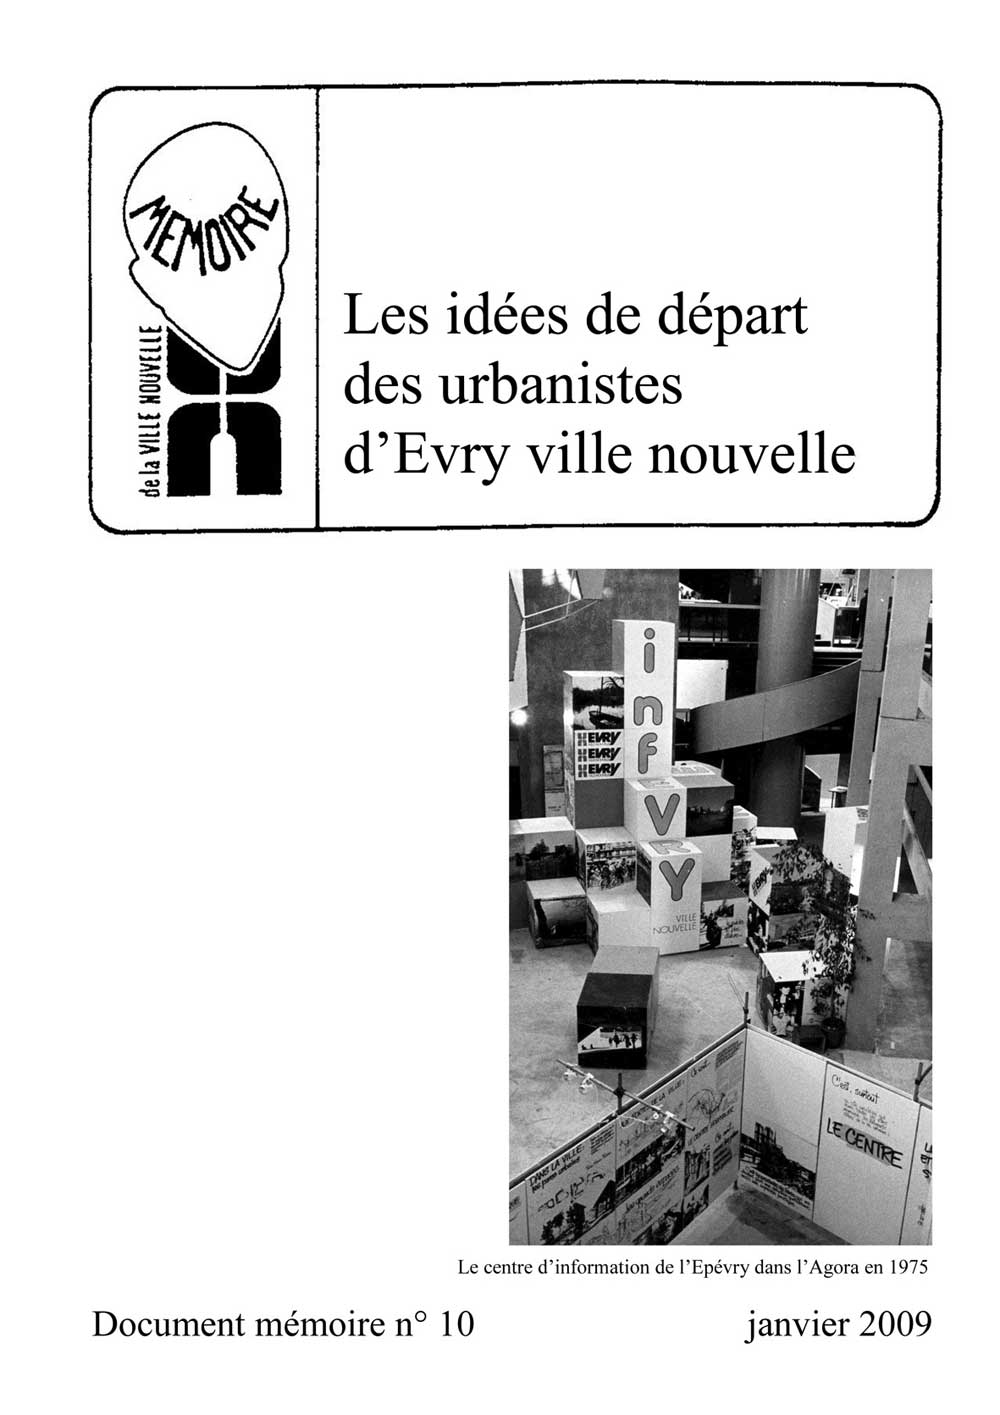 Document mémoire n°10 (2009)